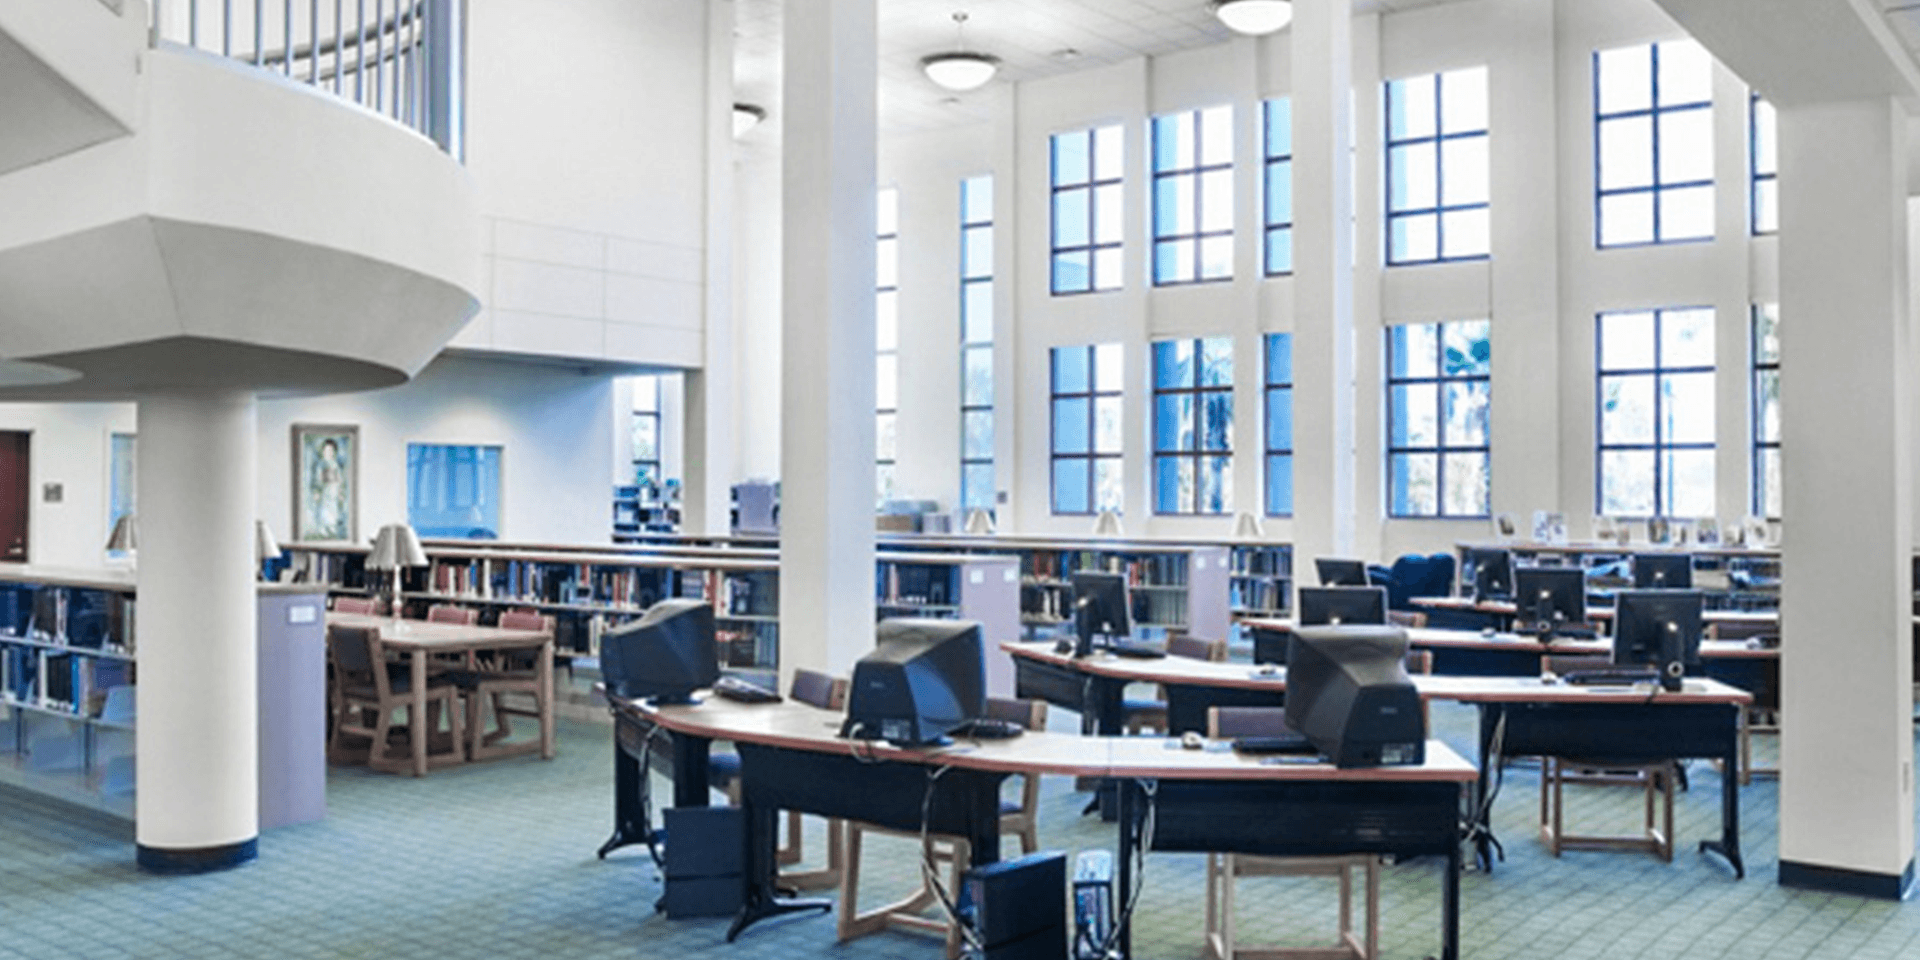 FAU Library and Classrooms 1